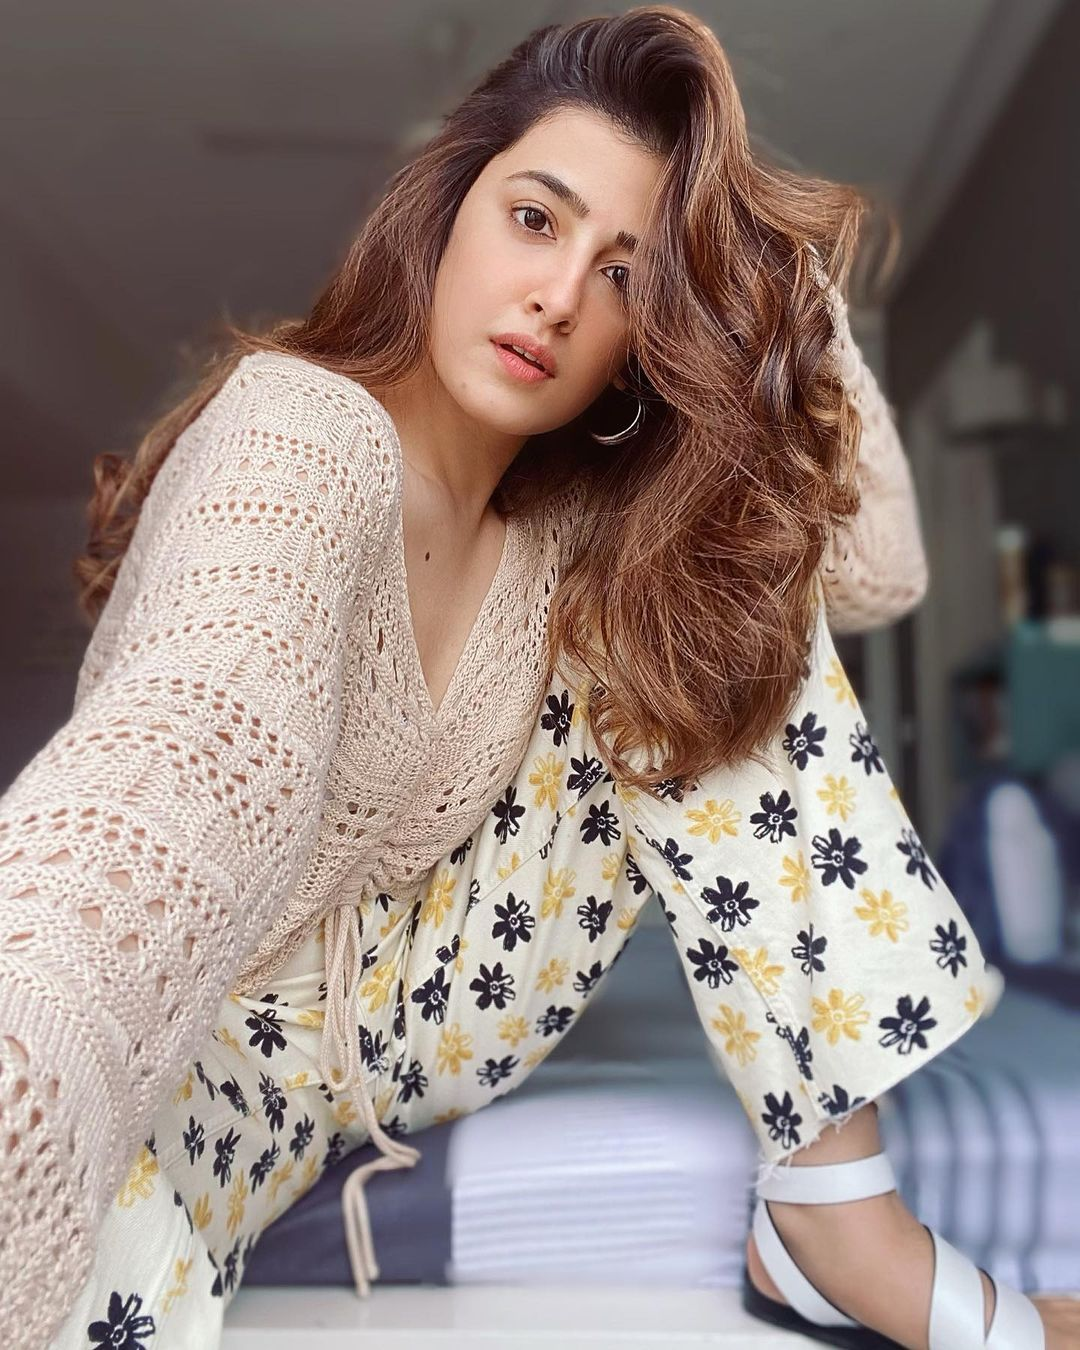 Nupur Sanon strikes a stylish pose in a corchet top and floral pants. (Image: Instagram)